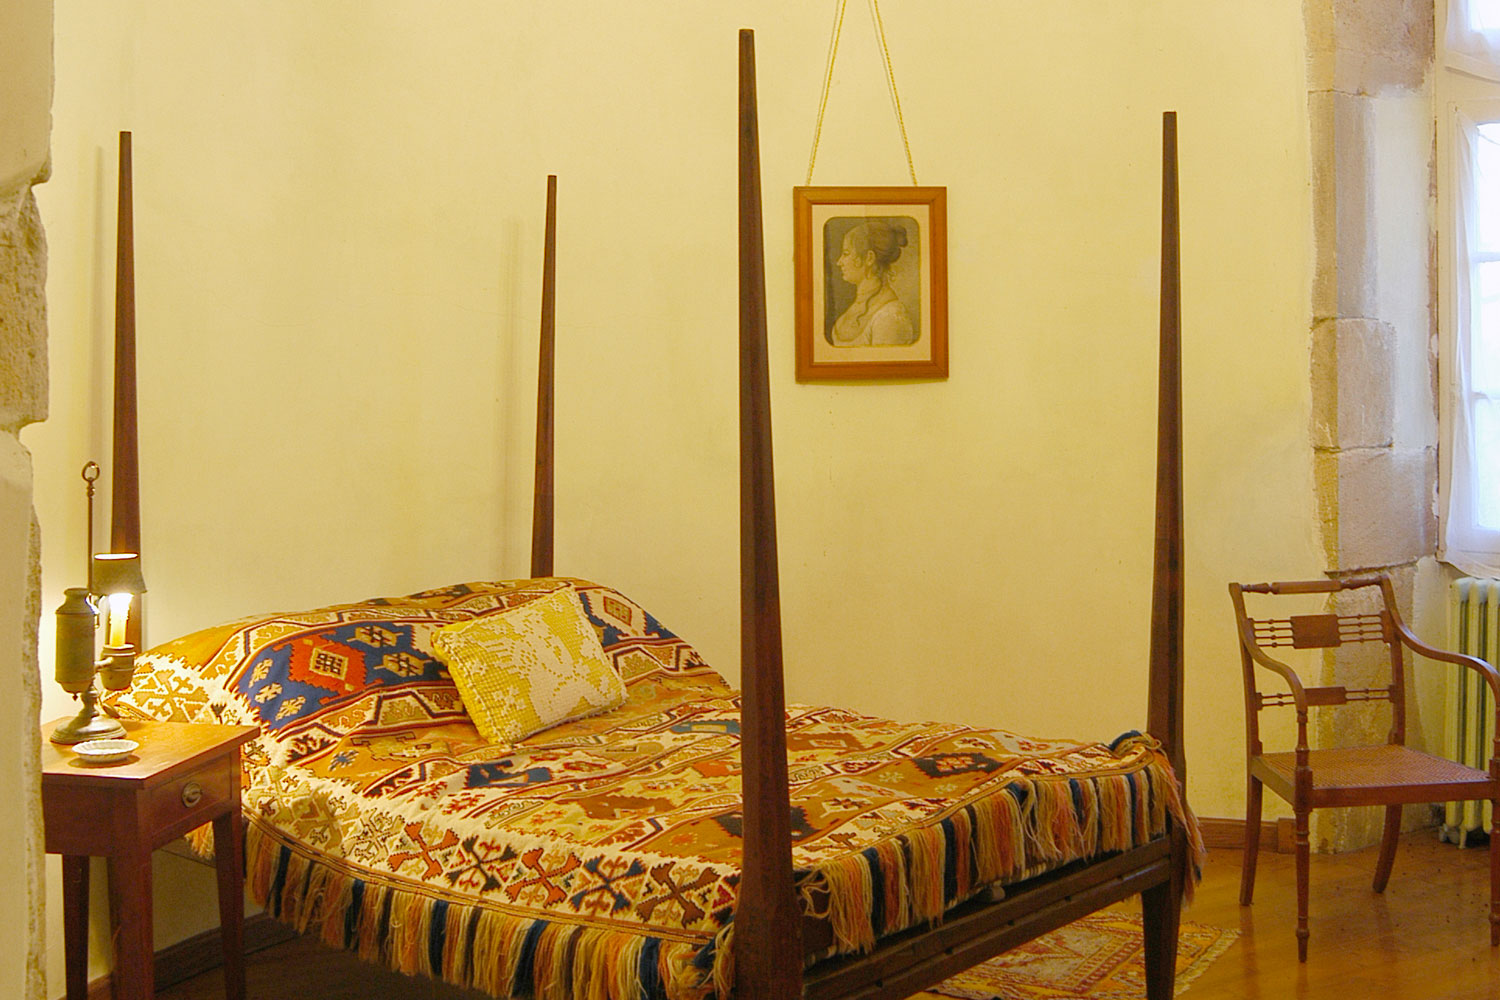 Chambre américaine / American bedroom